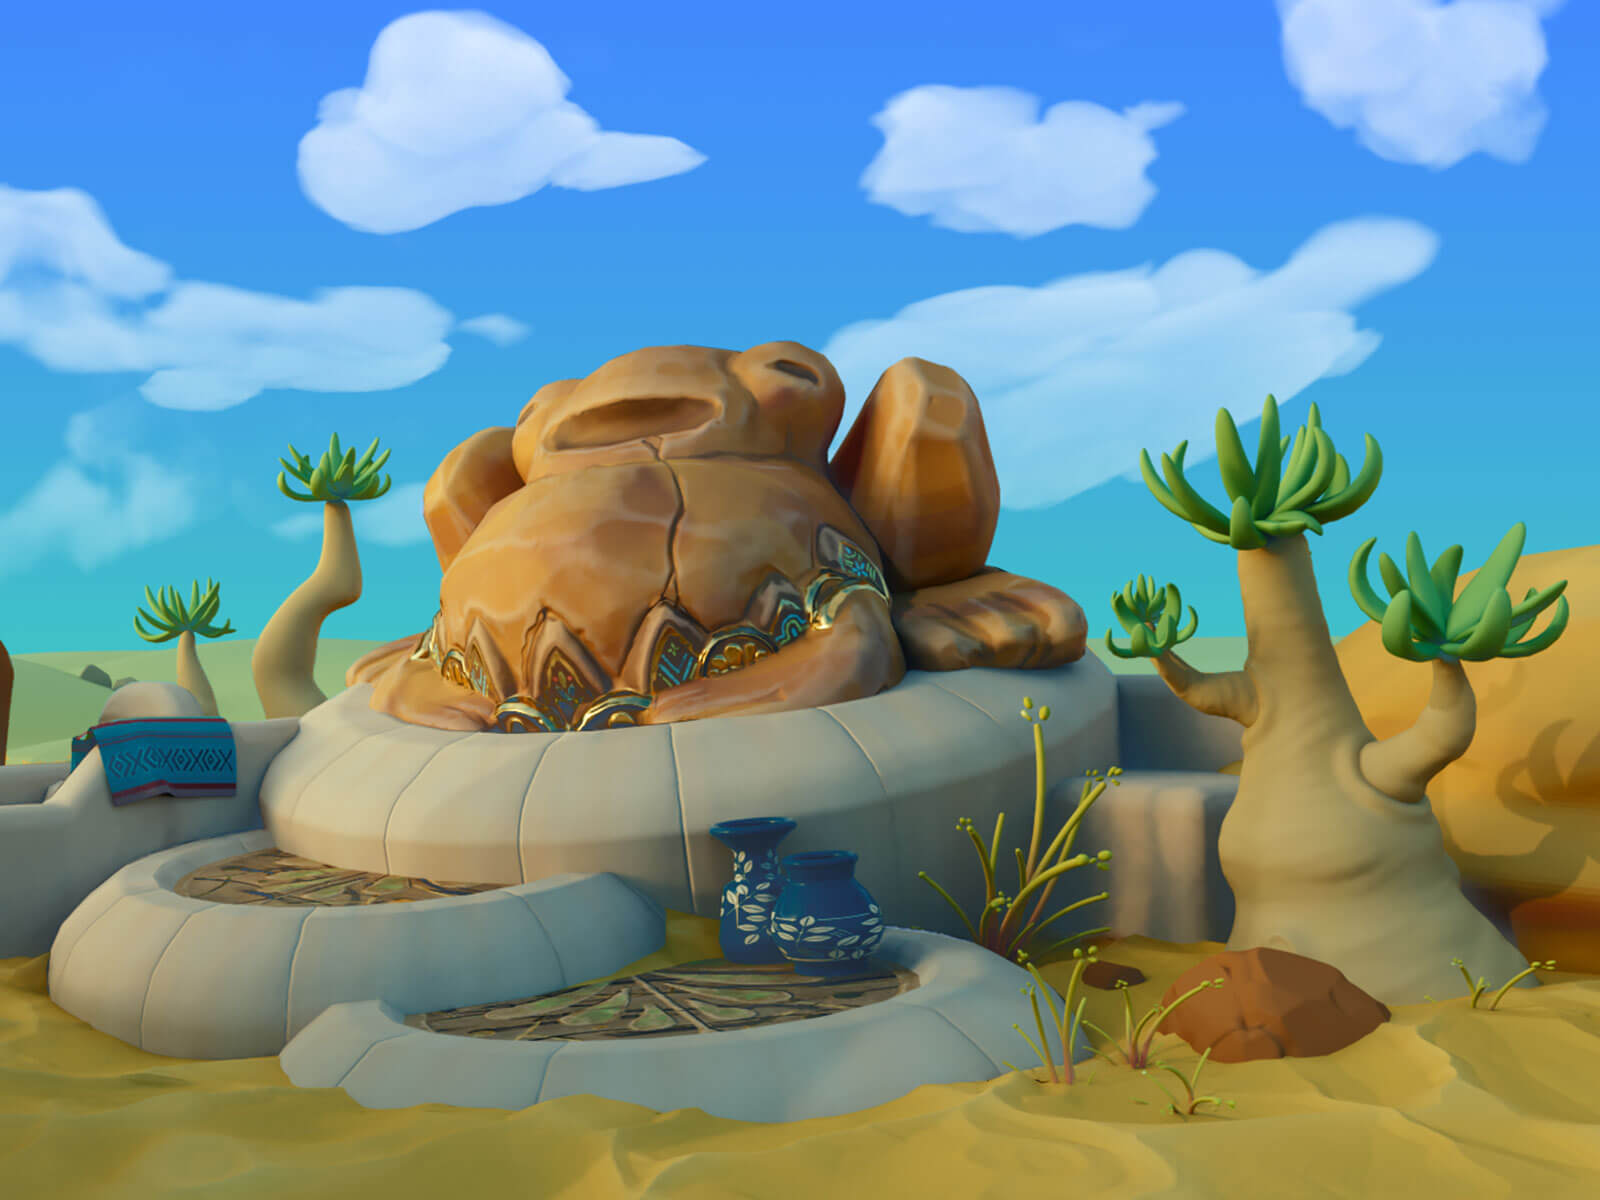 A stout, stone sculpture of a toad inlaid with jade and gold sits atop a stone pedestal in a desert under blue a sky.